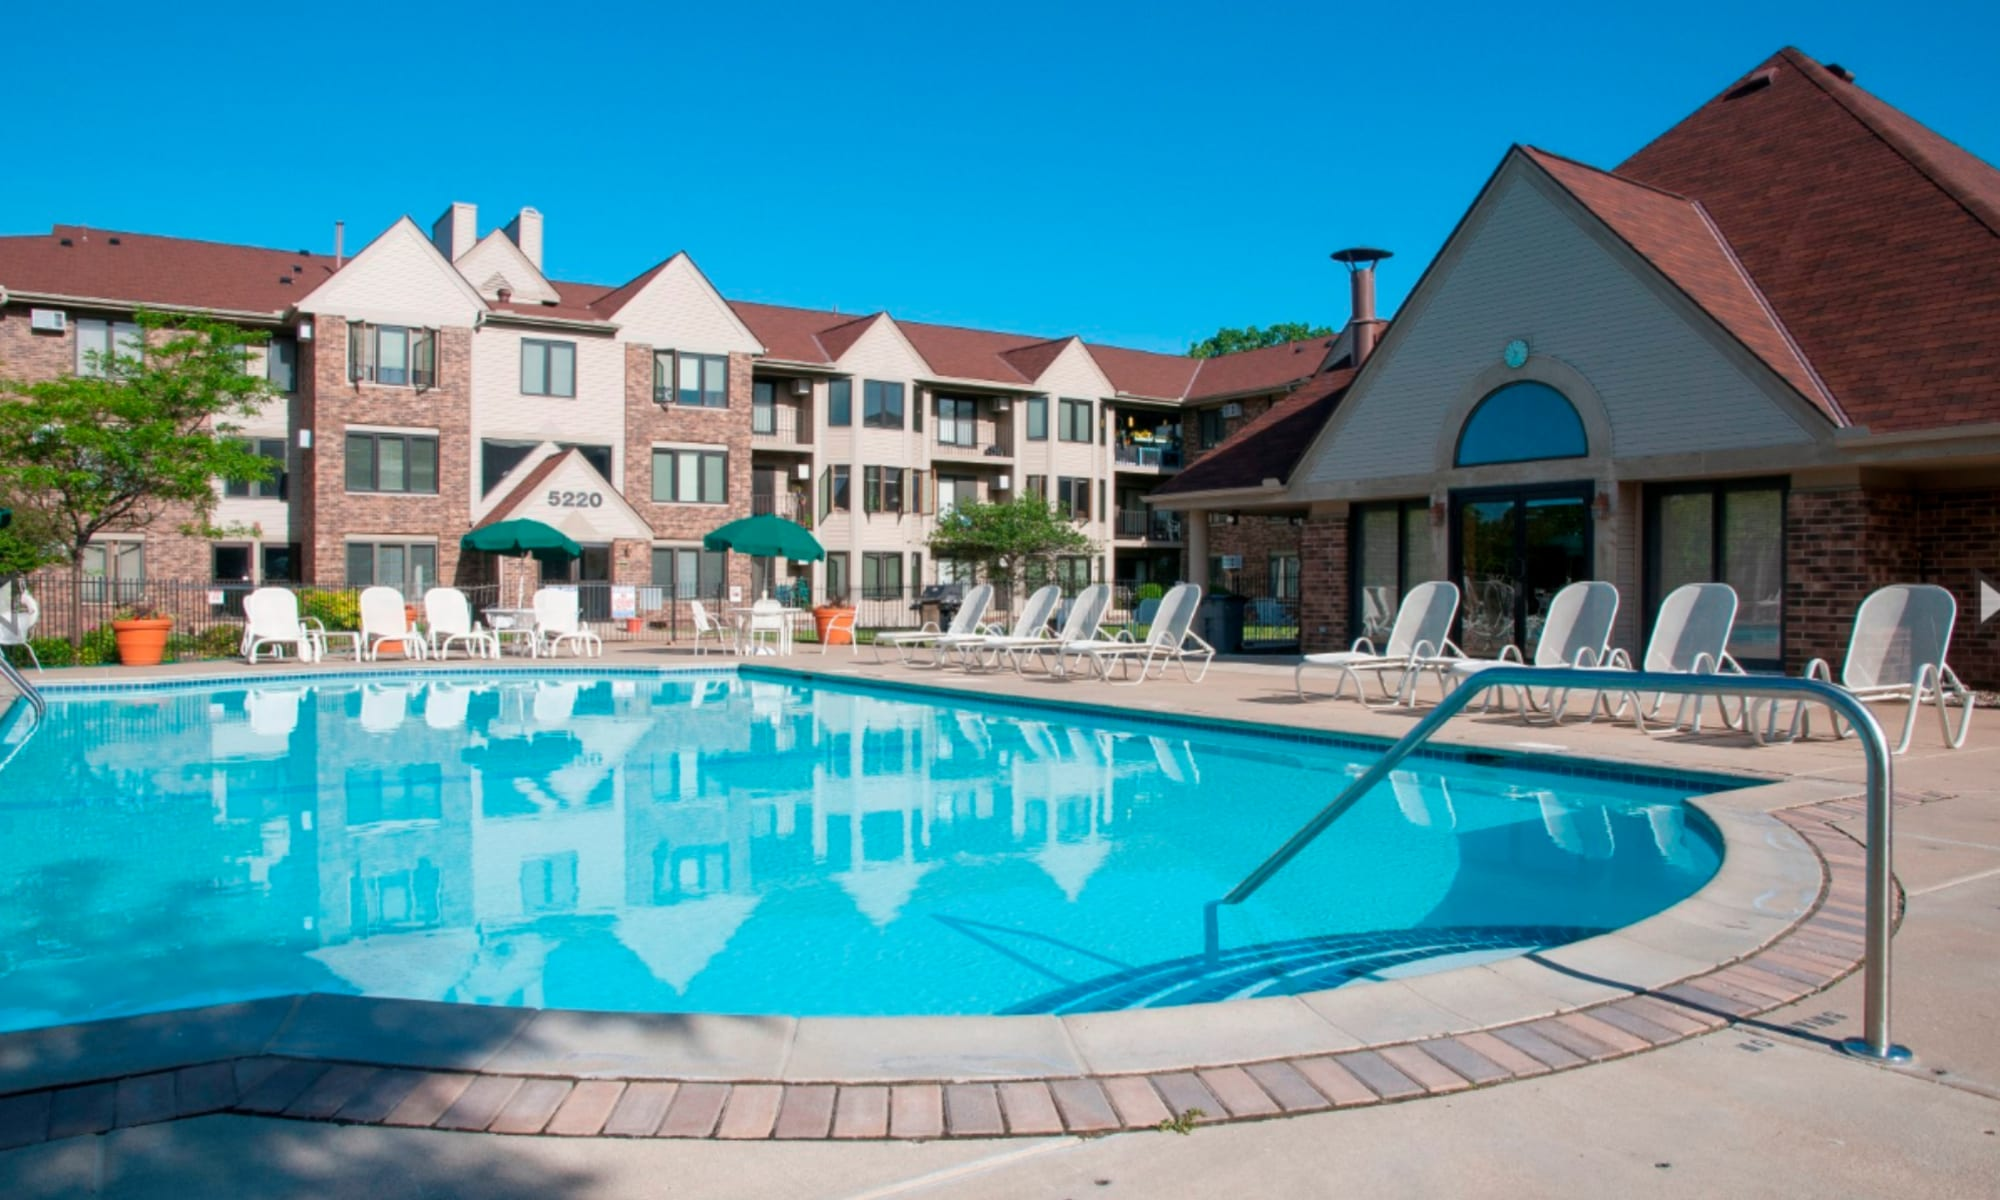 Oaks Lincoln Apartments & Townhomes apartments in Edina, Minnesota